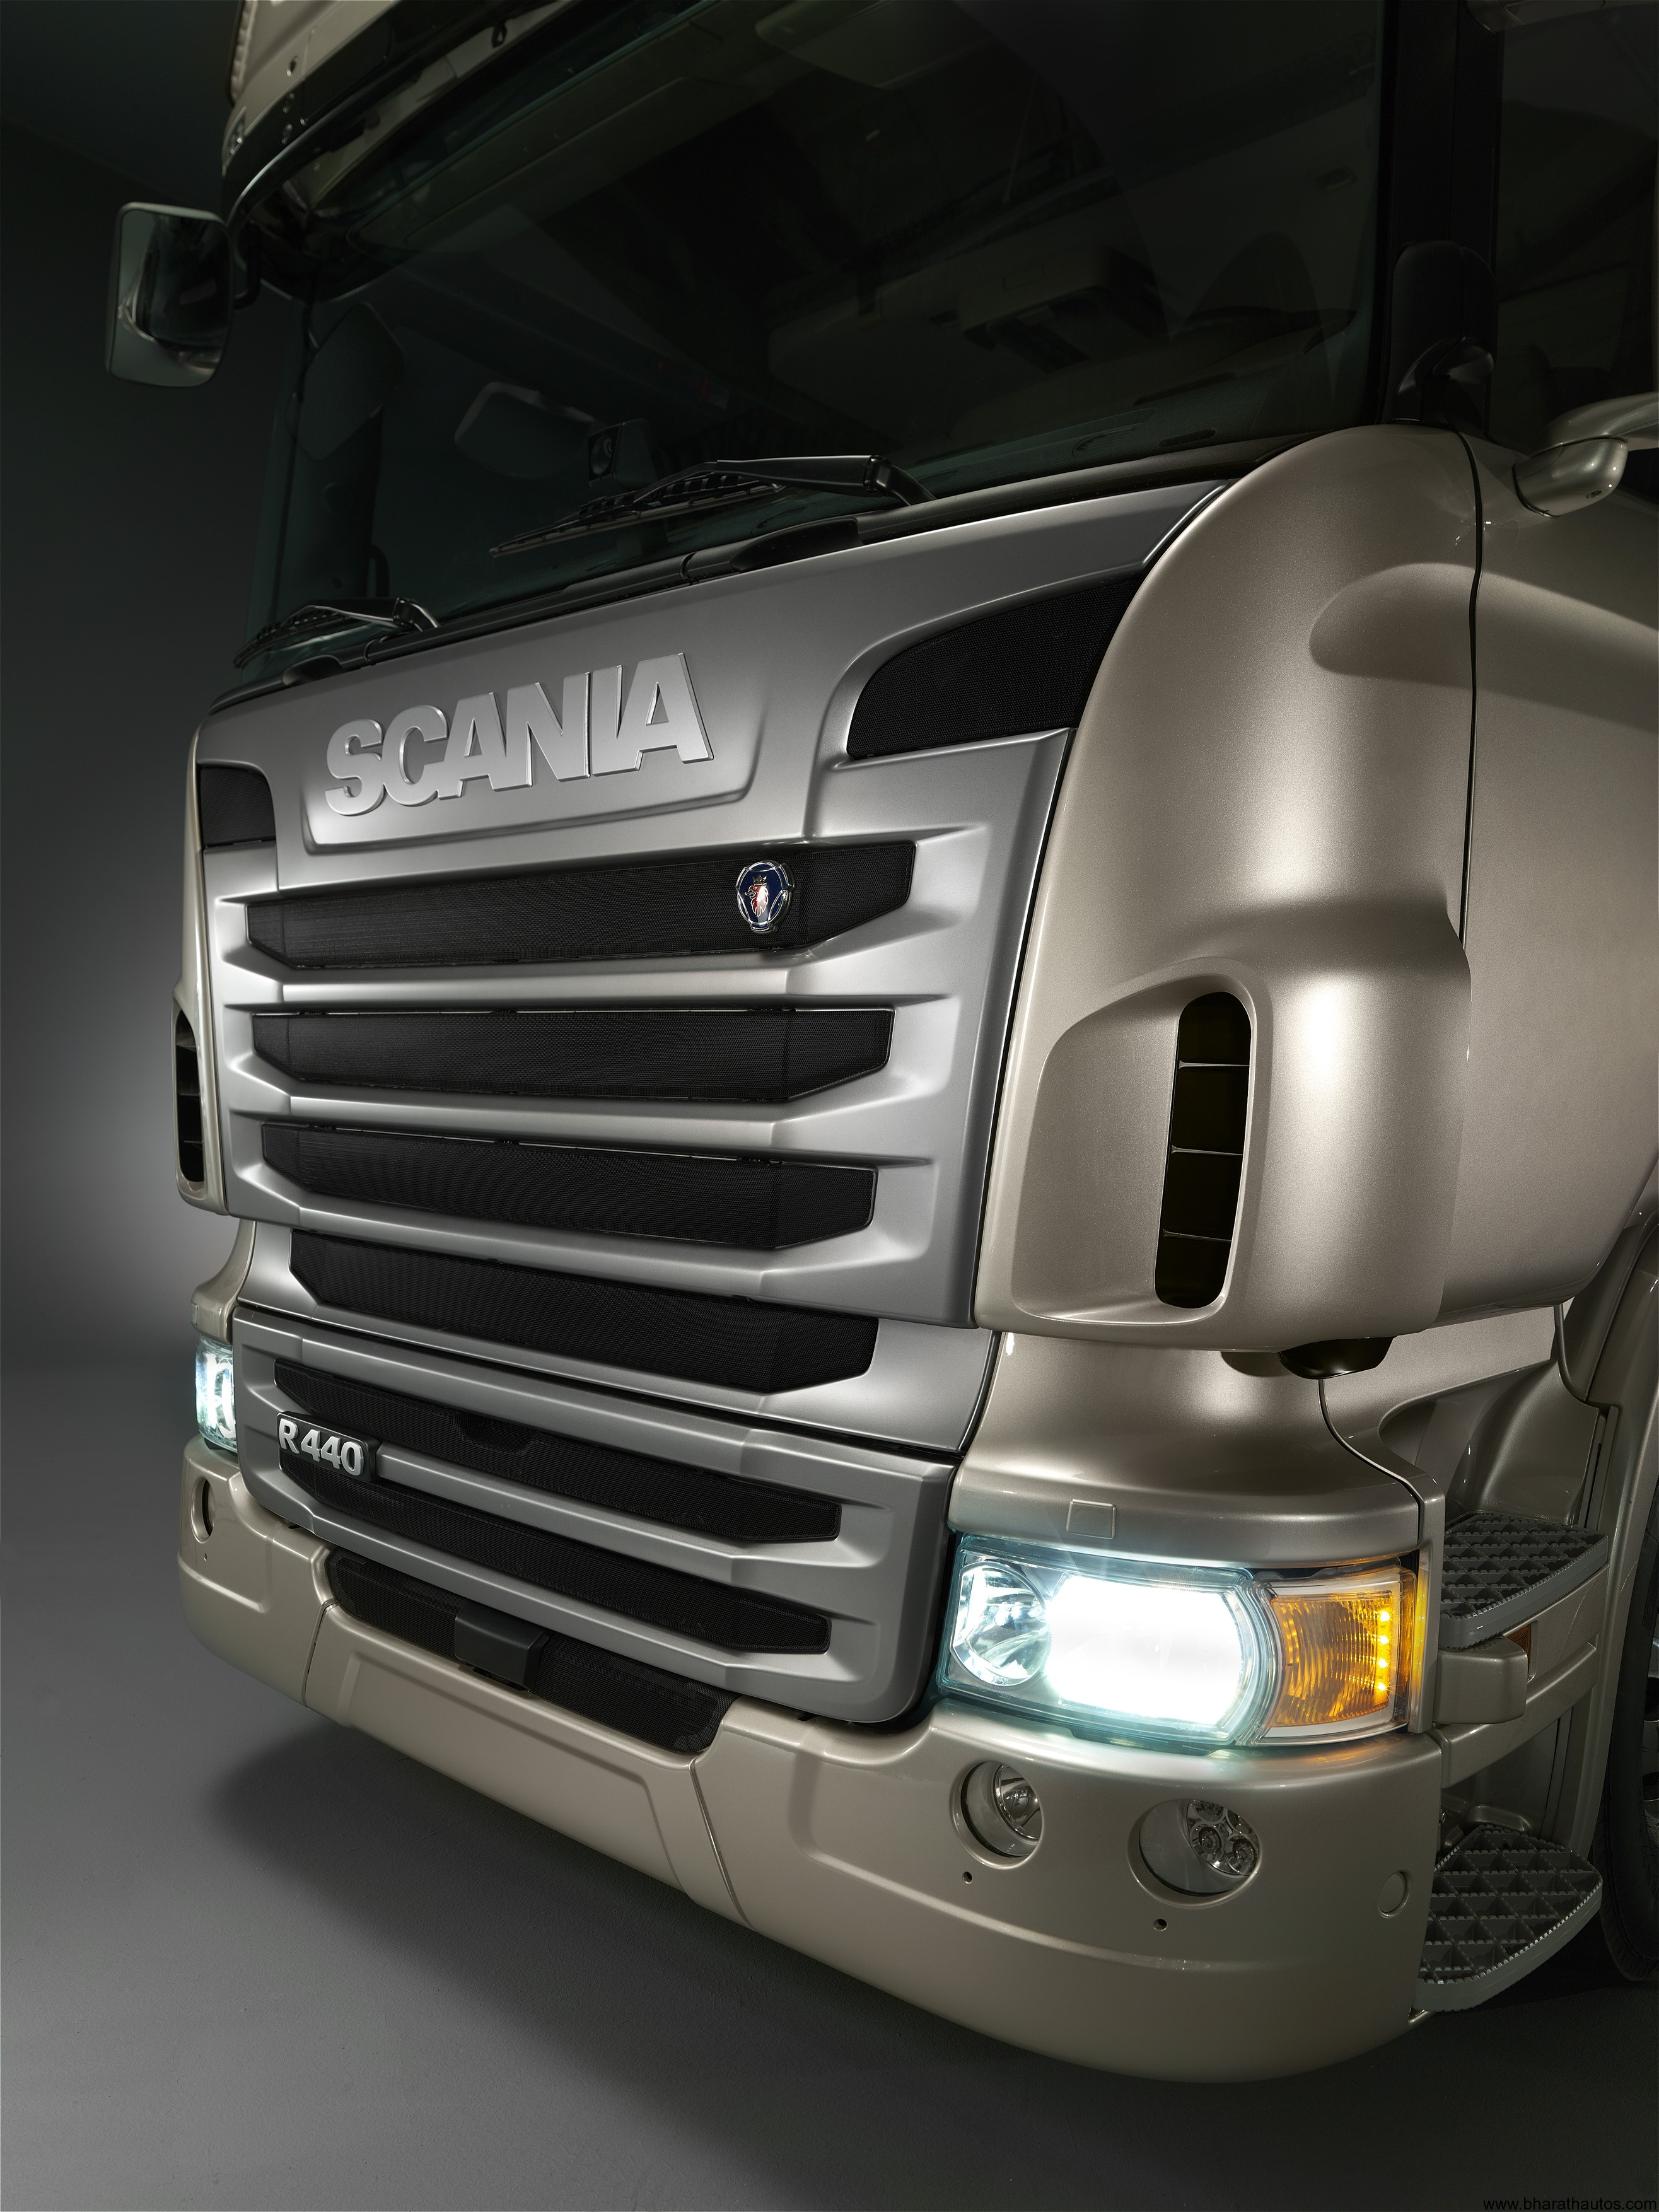 Sweden's Scania to set-up their plant in Karnataka